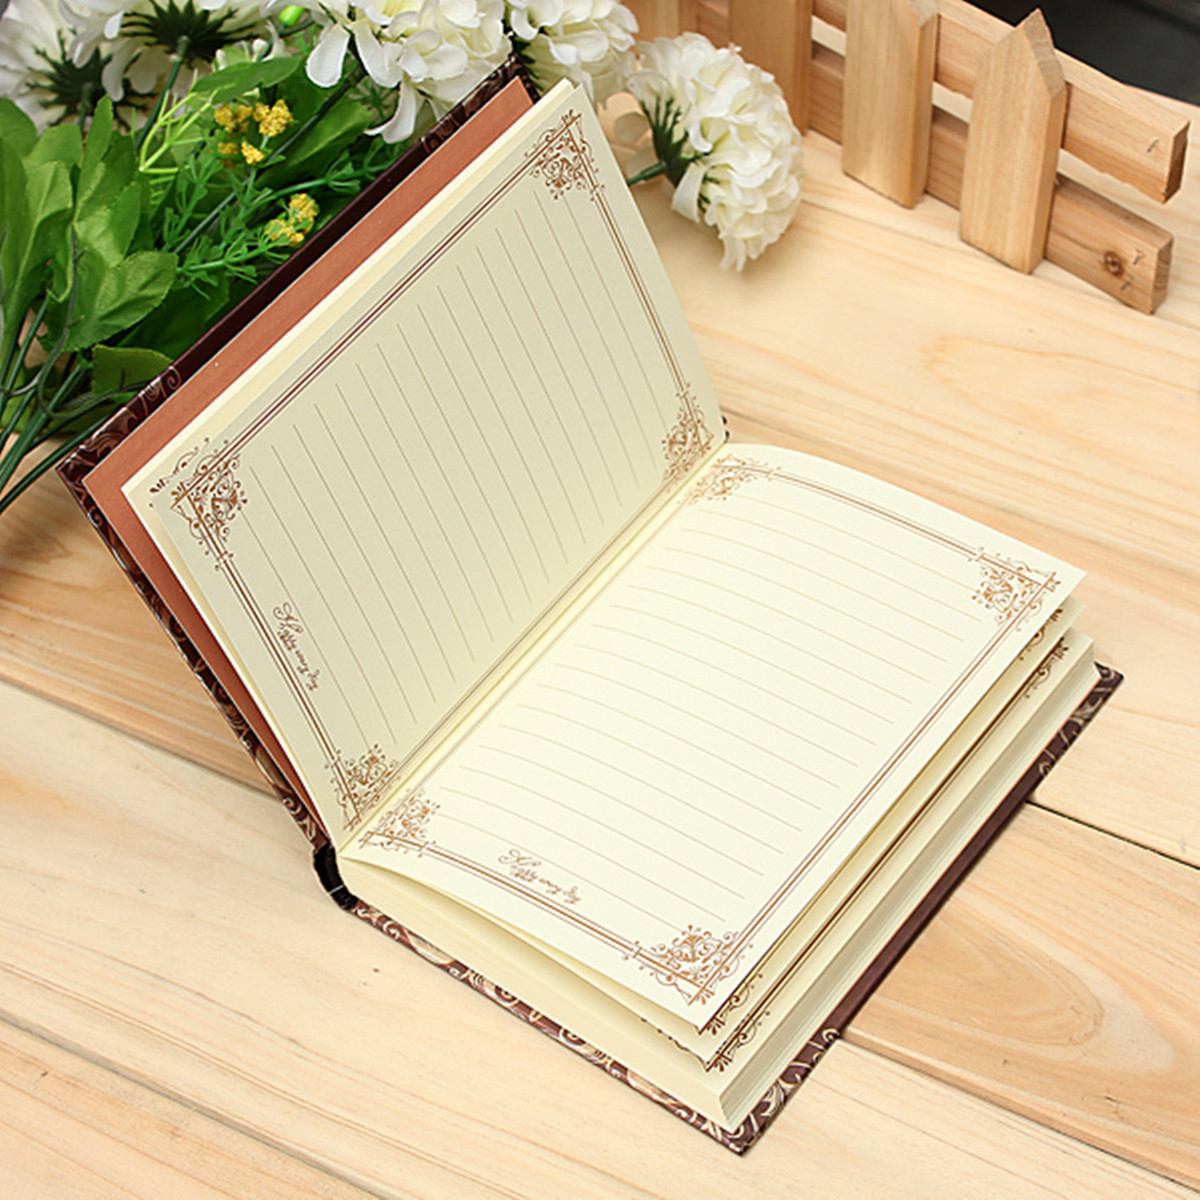 1Pcs Retro Vintage Journal Diary Notebook Blank Hard Cover Sketchbook Paper Travel Journal Notebook